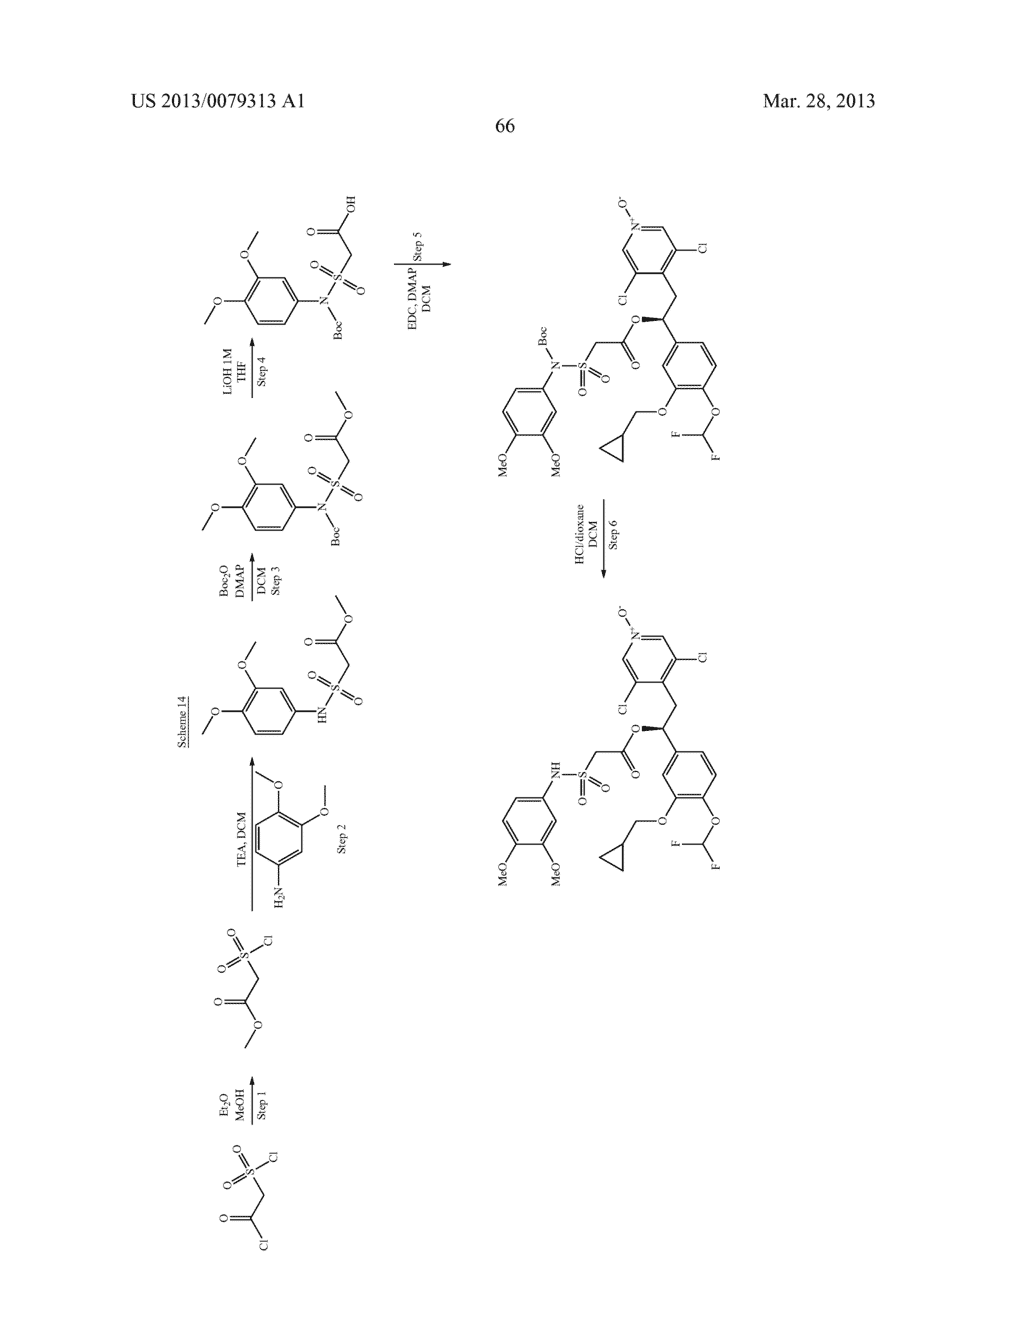 DERIVATIVES OF 1-PHENYL-2-PYRIDINYL ALKYL ALCOHOLS AS PHOSPHODIESTERASE     INHIBITORS - diagram, schematic, and image 67